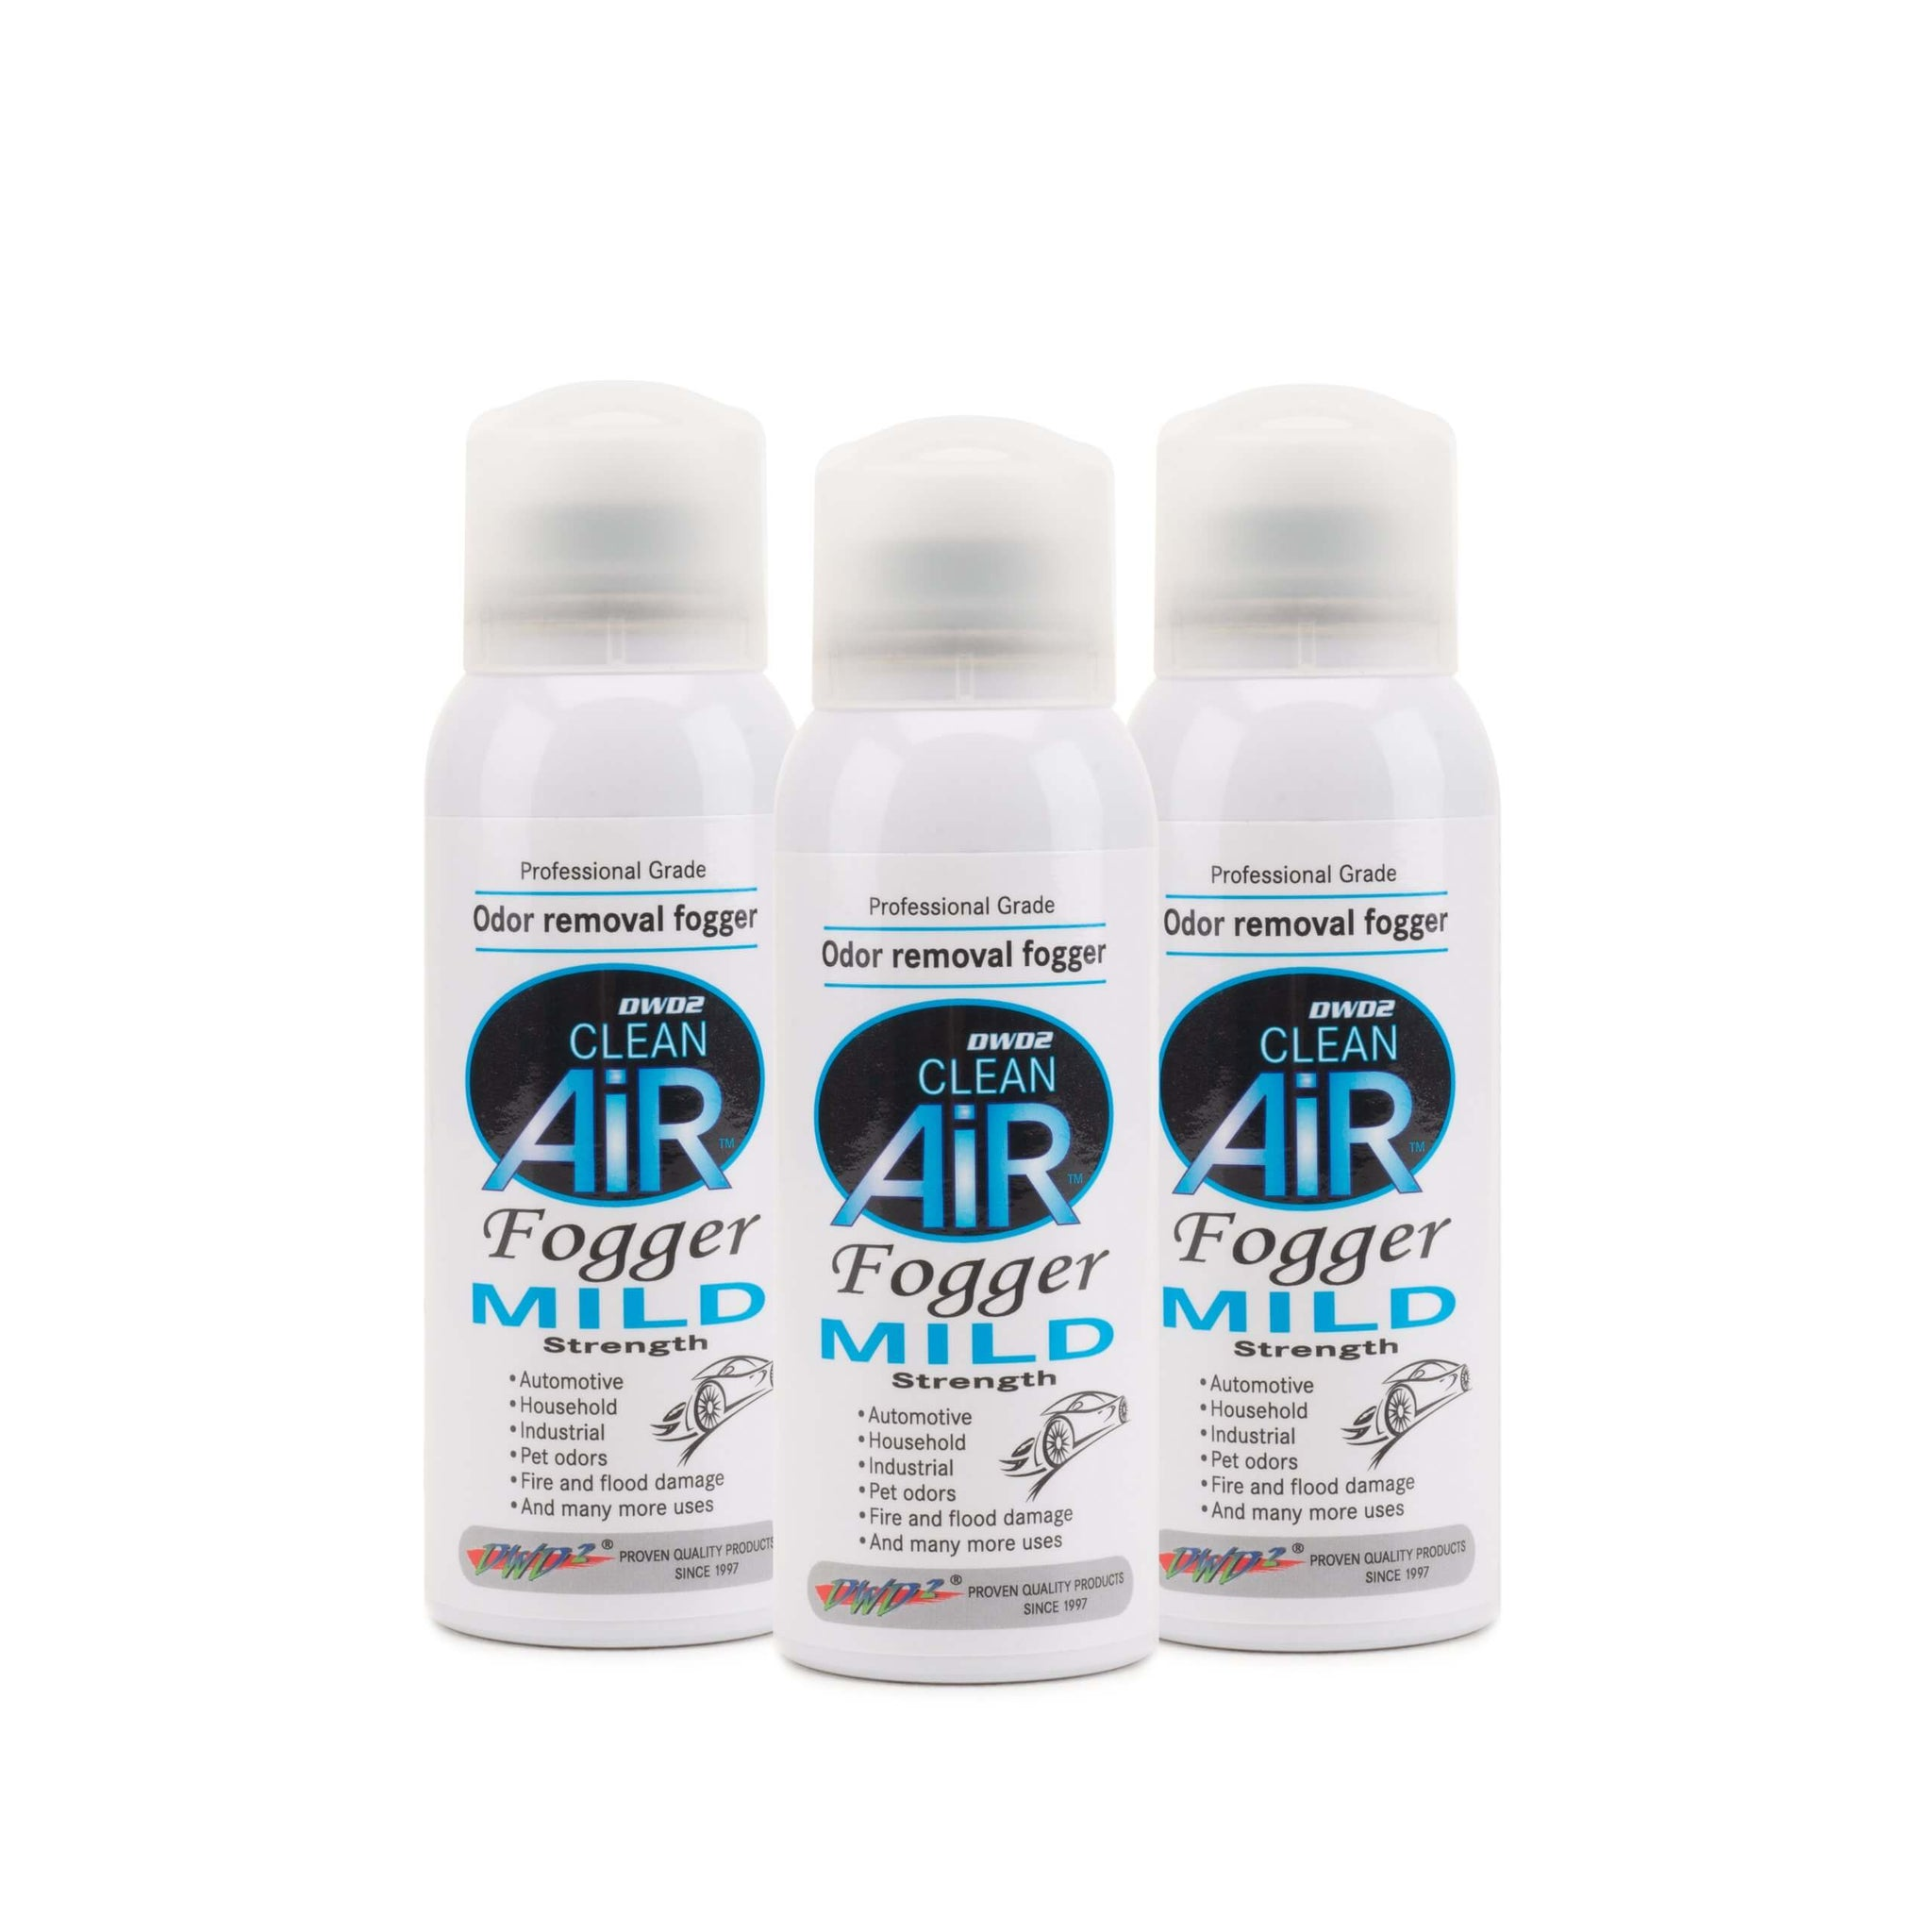 Clean Air Odor Removal Fogger Mild Strength 3 oz.